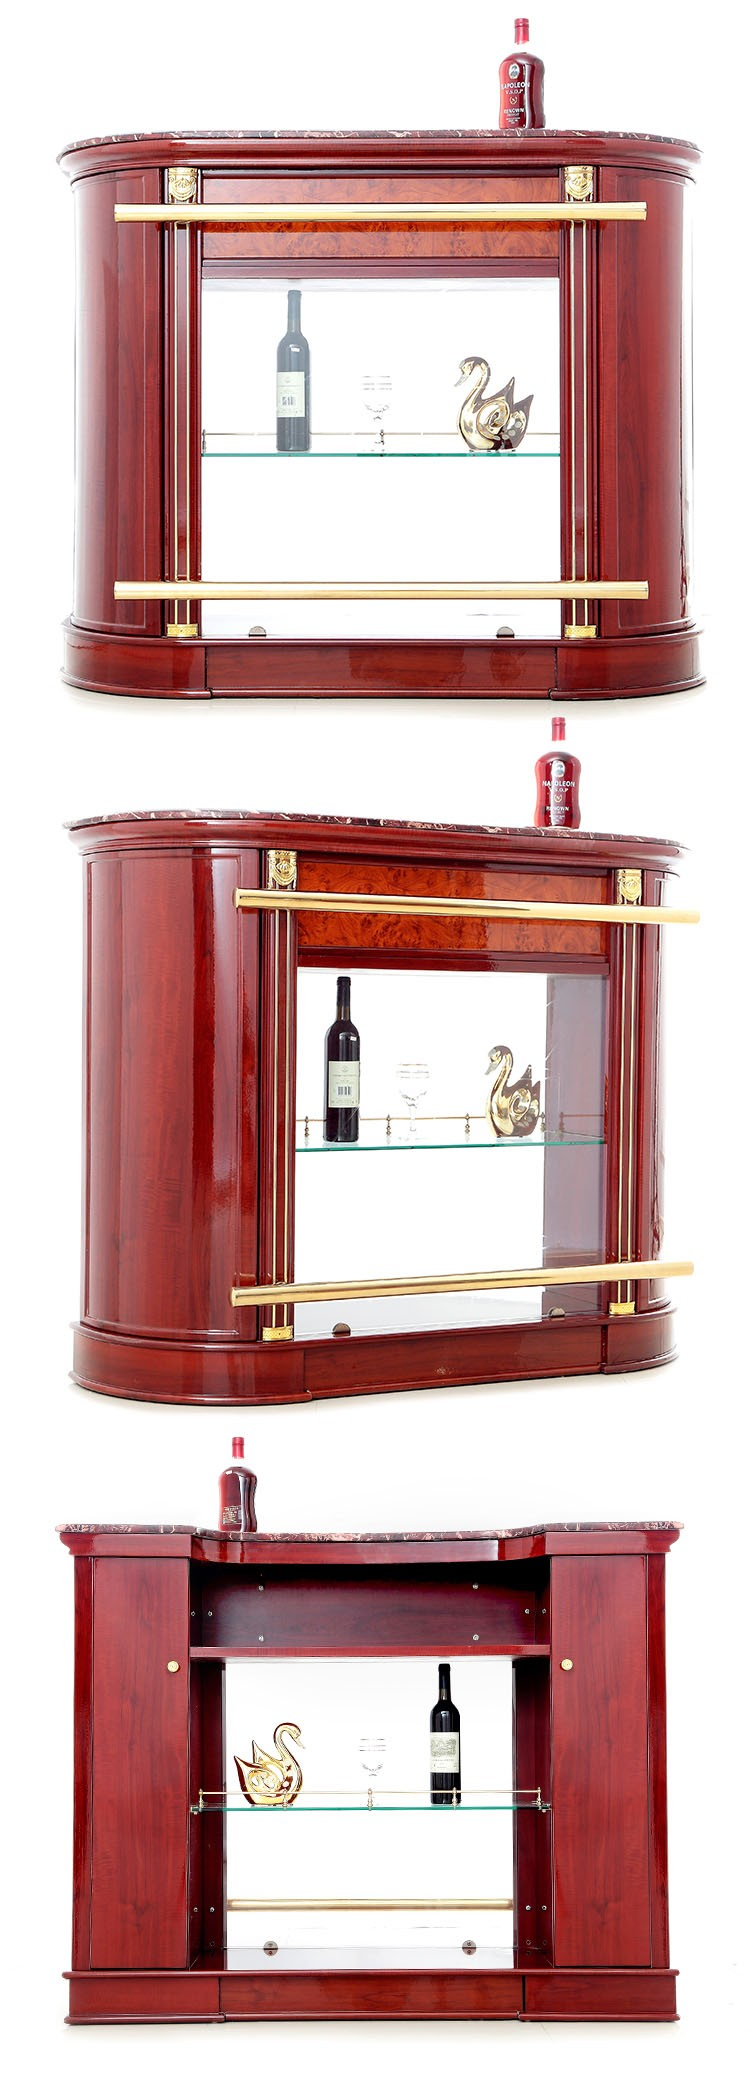 al por mayor barra muebles de madera barata diseo moderno mini home bar